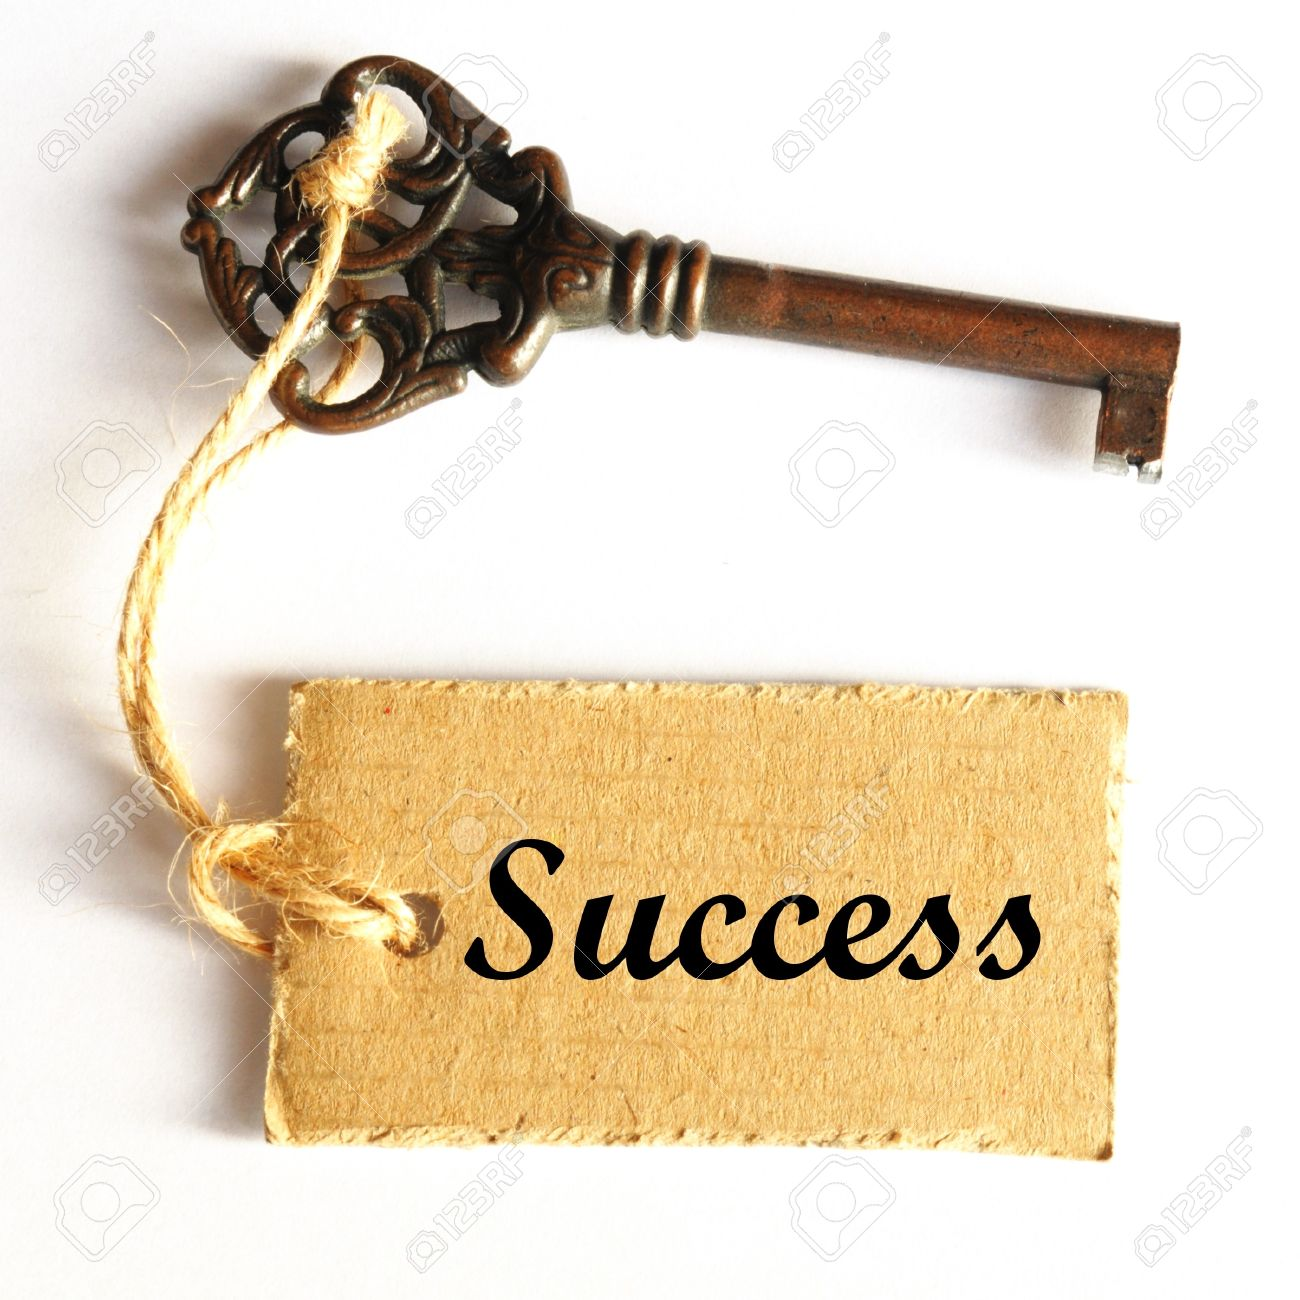 old key to success concept with label or tag Stock Photo - 7197138